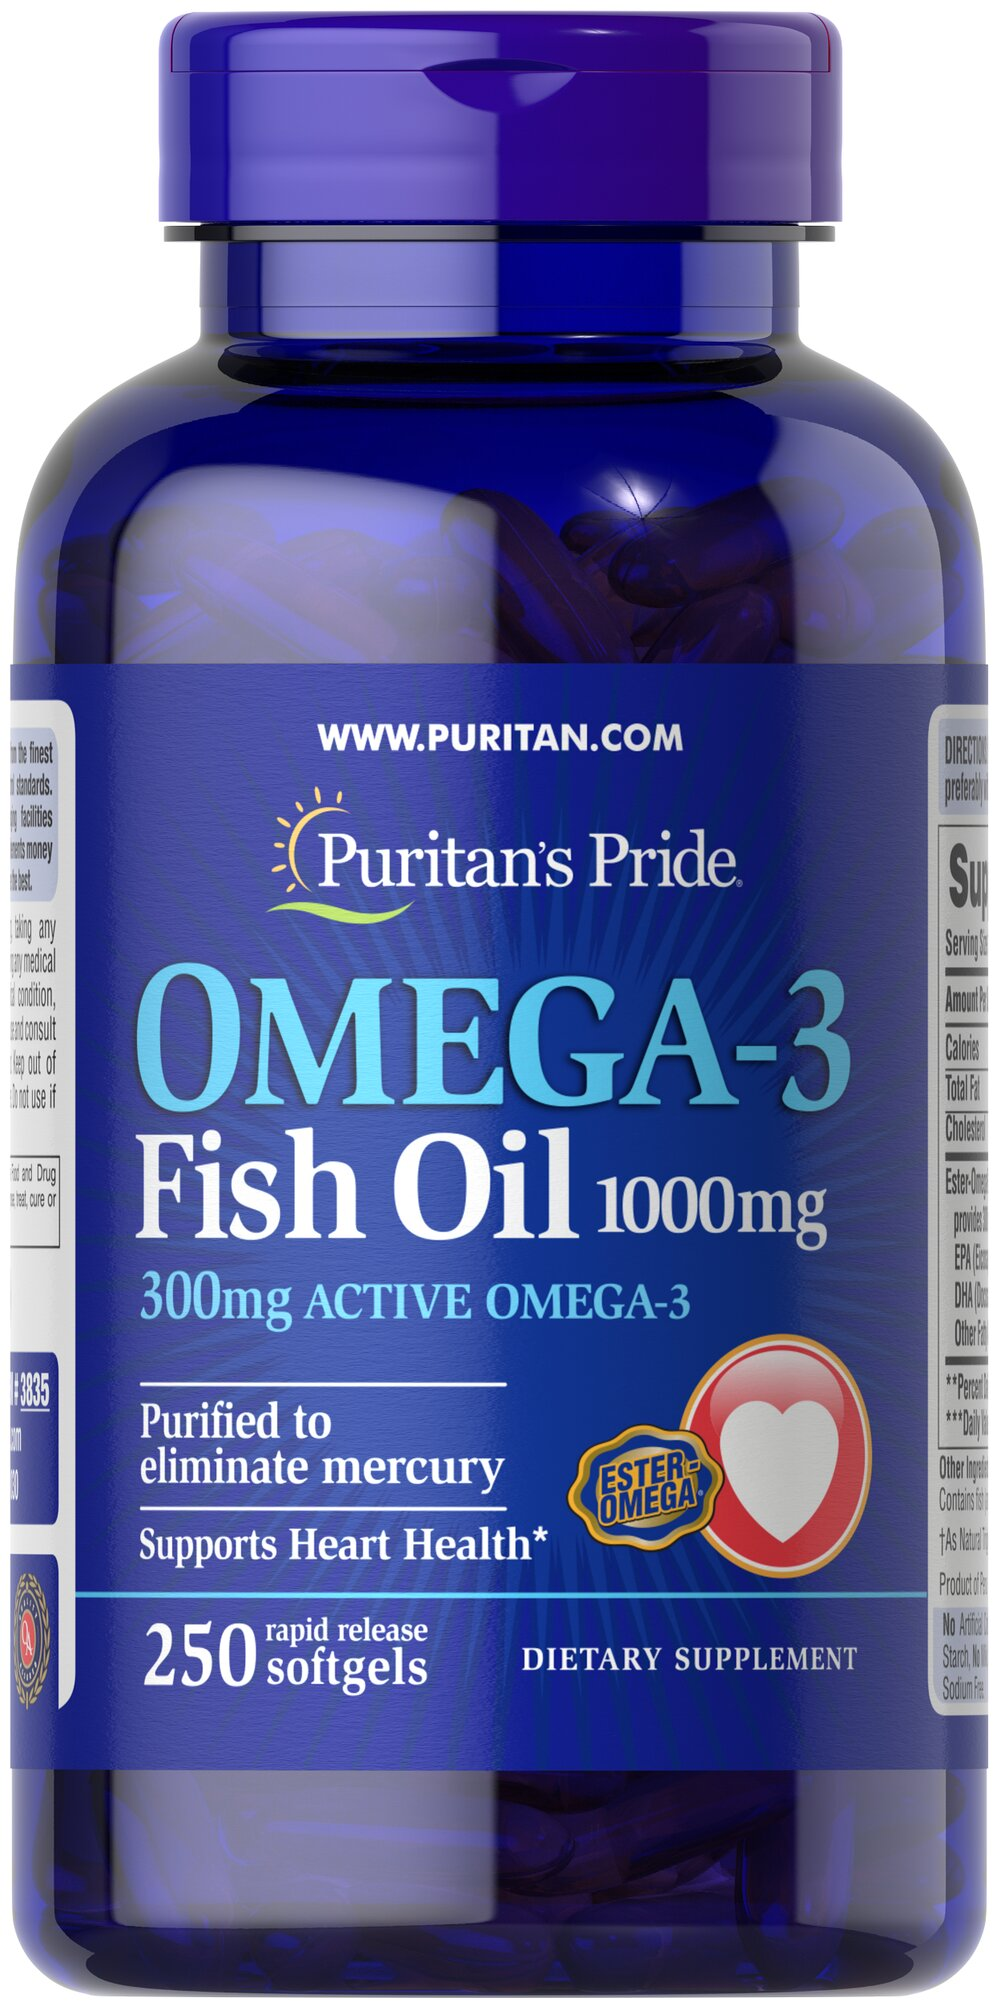 Omega 3 fish oil 1000 mg 300 mg active omega 3 250 for Omega 3 fish oil reviews